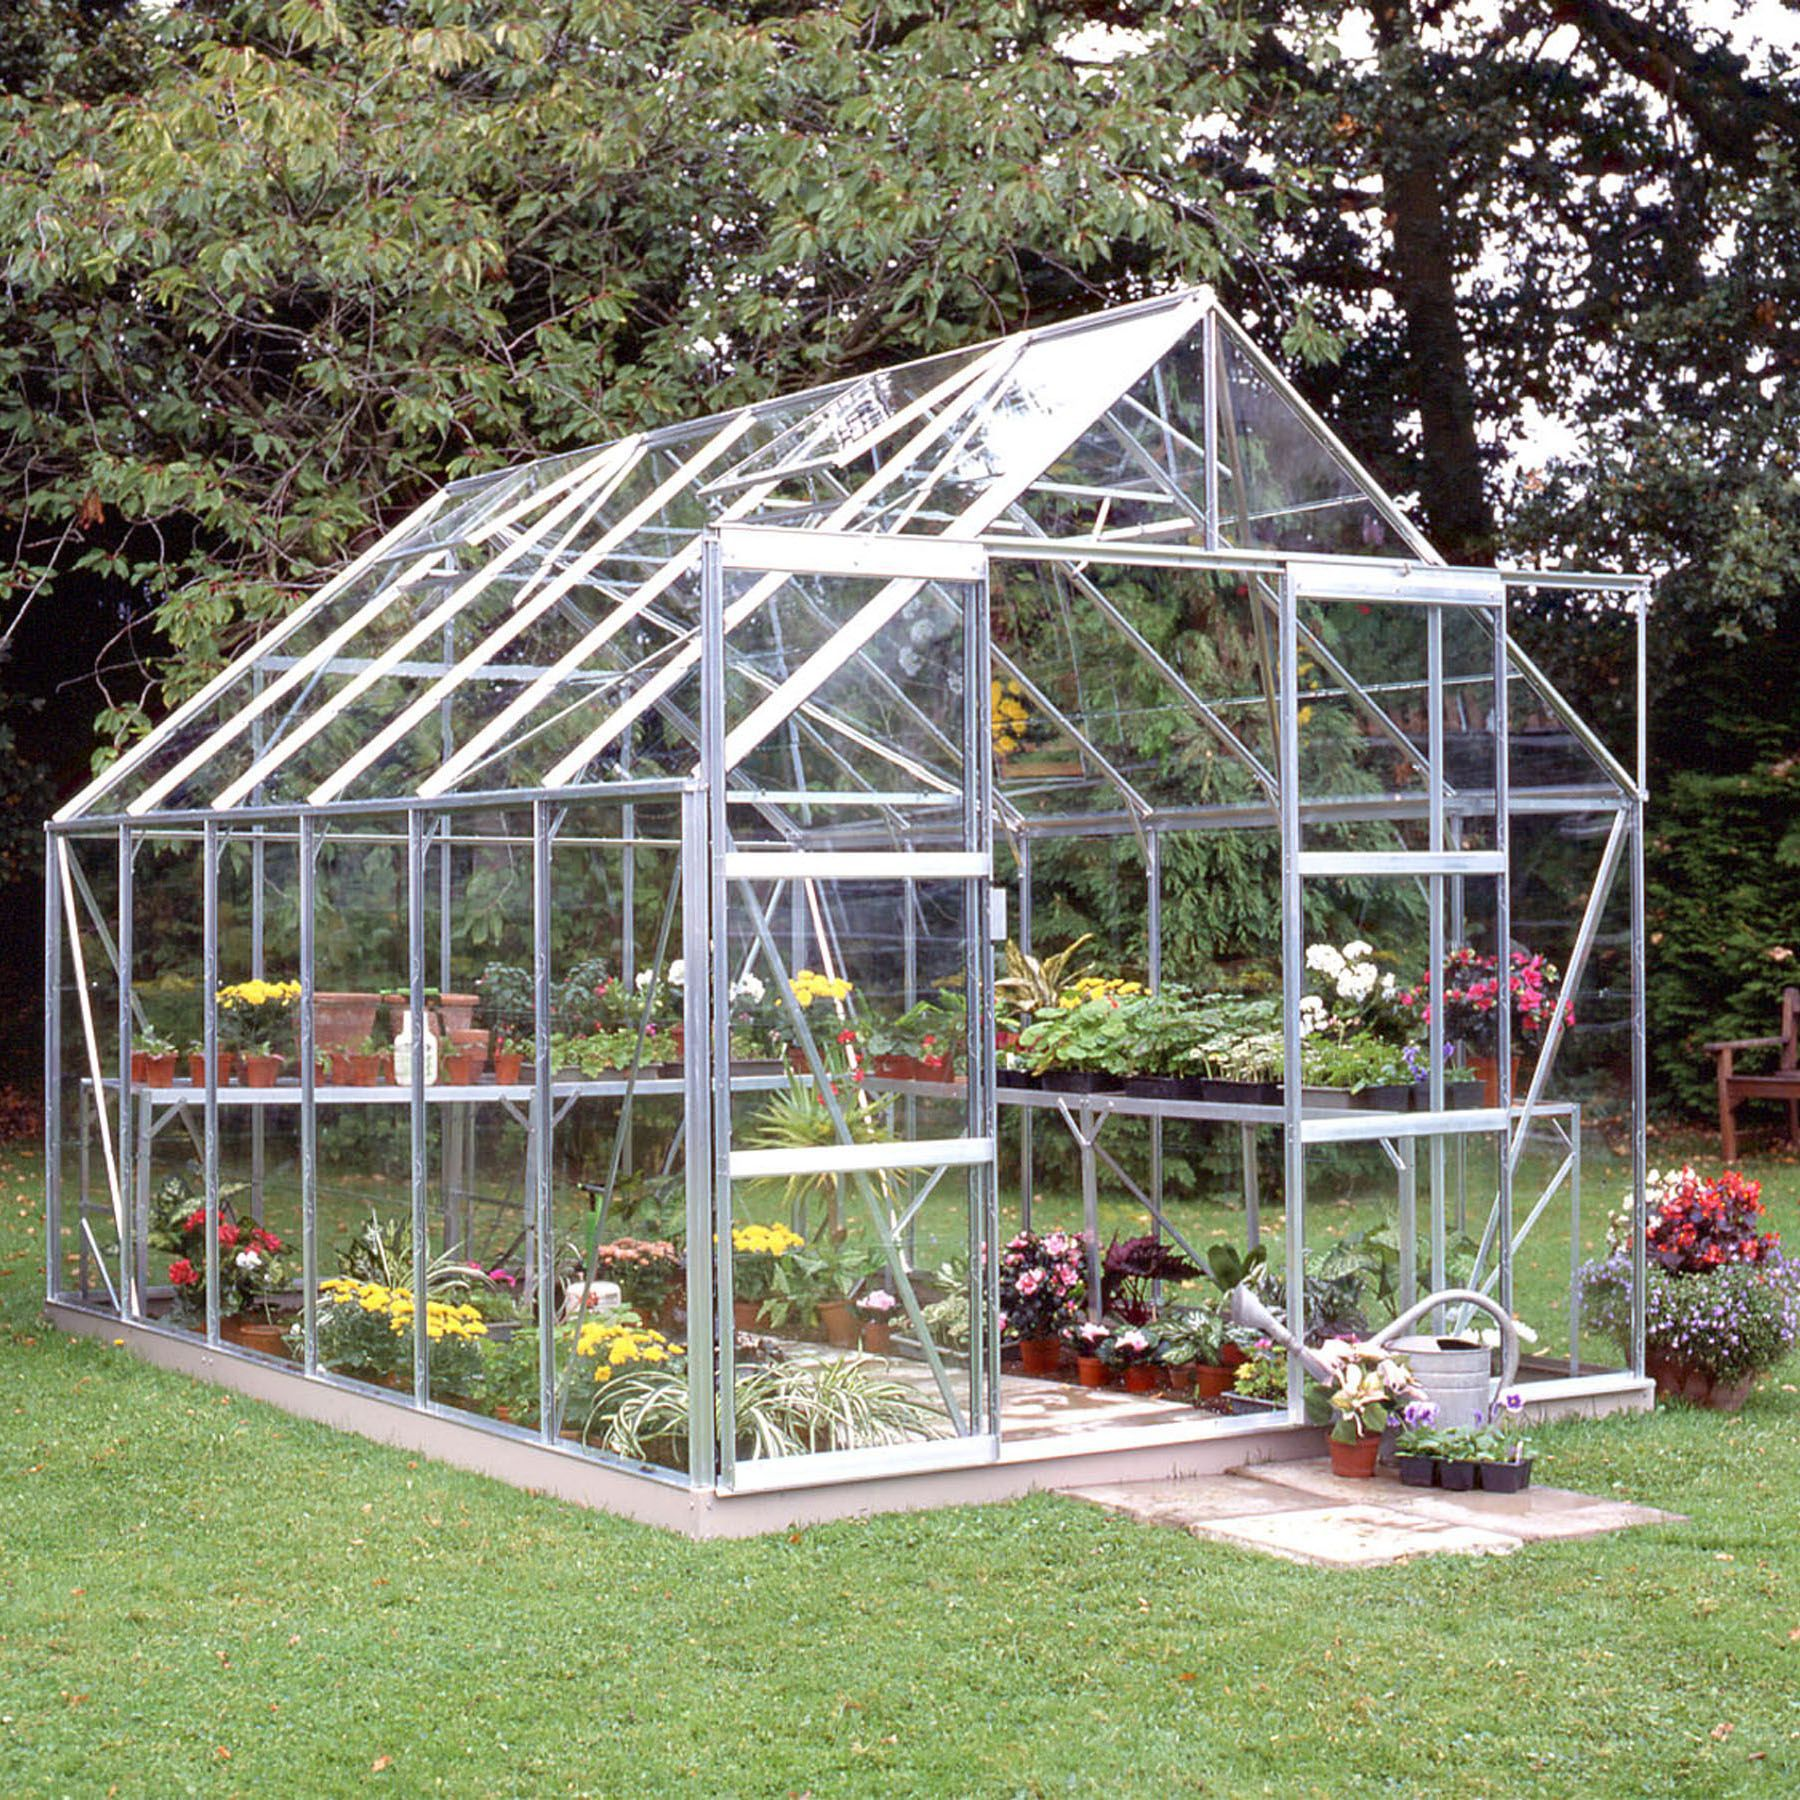 B&Q Premier Metal 8x12 Horticultural glass greenhouse